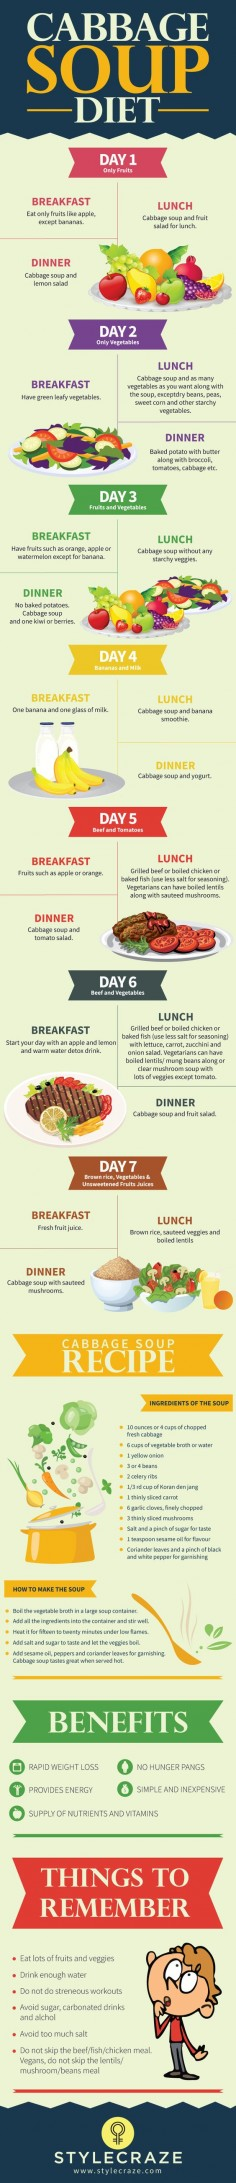 If you are in search of an effective diet that could help you reduce weight drastically, try the cabbage soup diet. Dieticians describe cabbage soup as a fad diet. This diet is extremely helpful for people who want to quickly shed weight. Learn all about it in this infographic from StyleCraze.